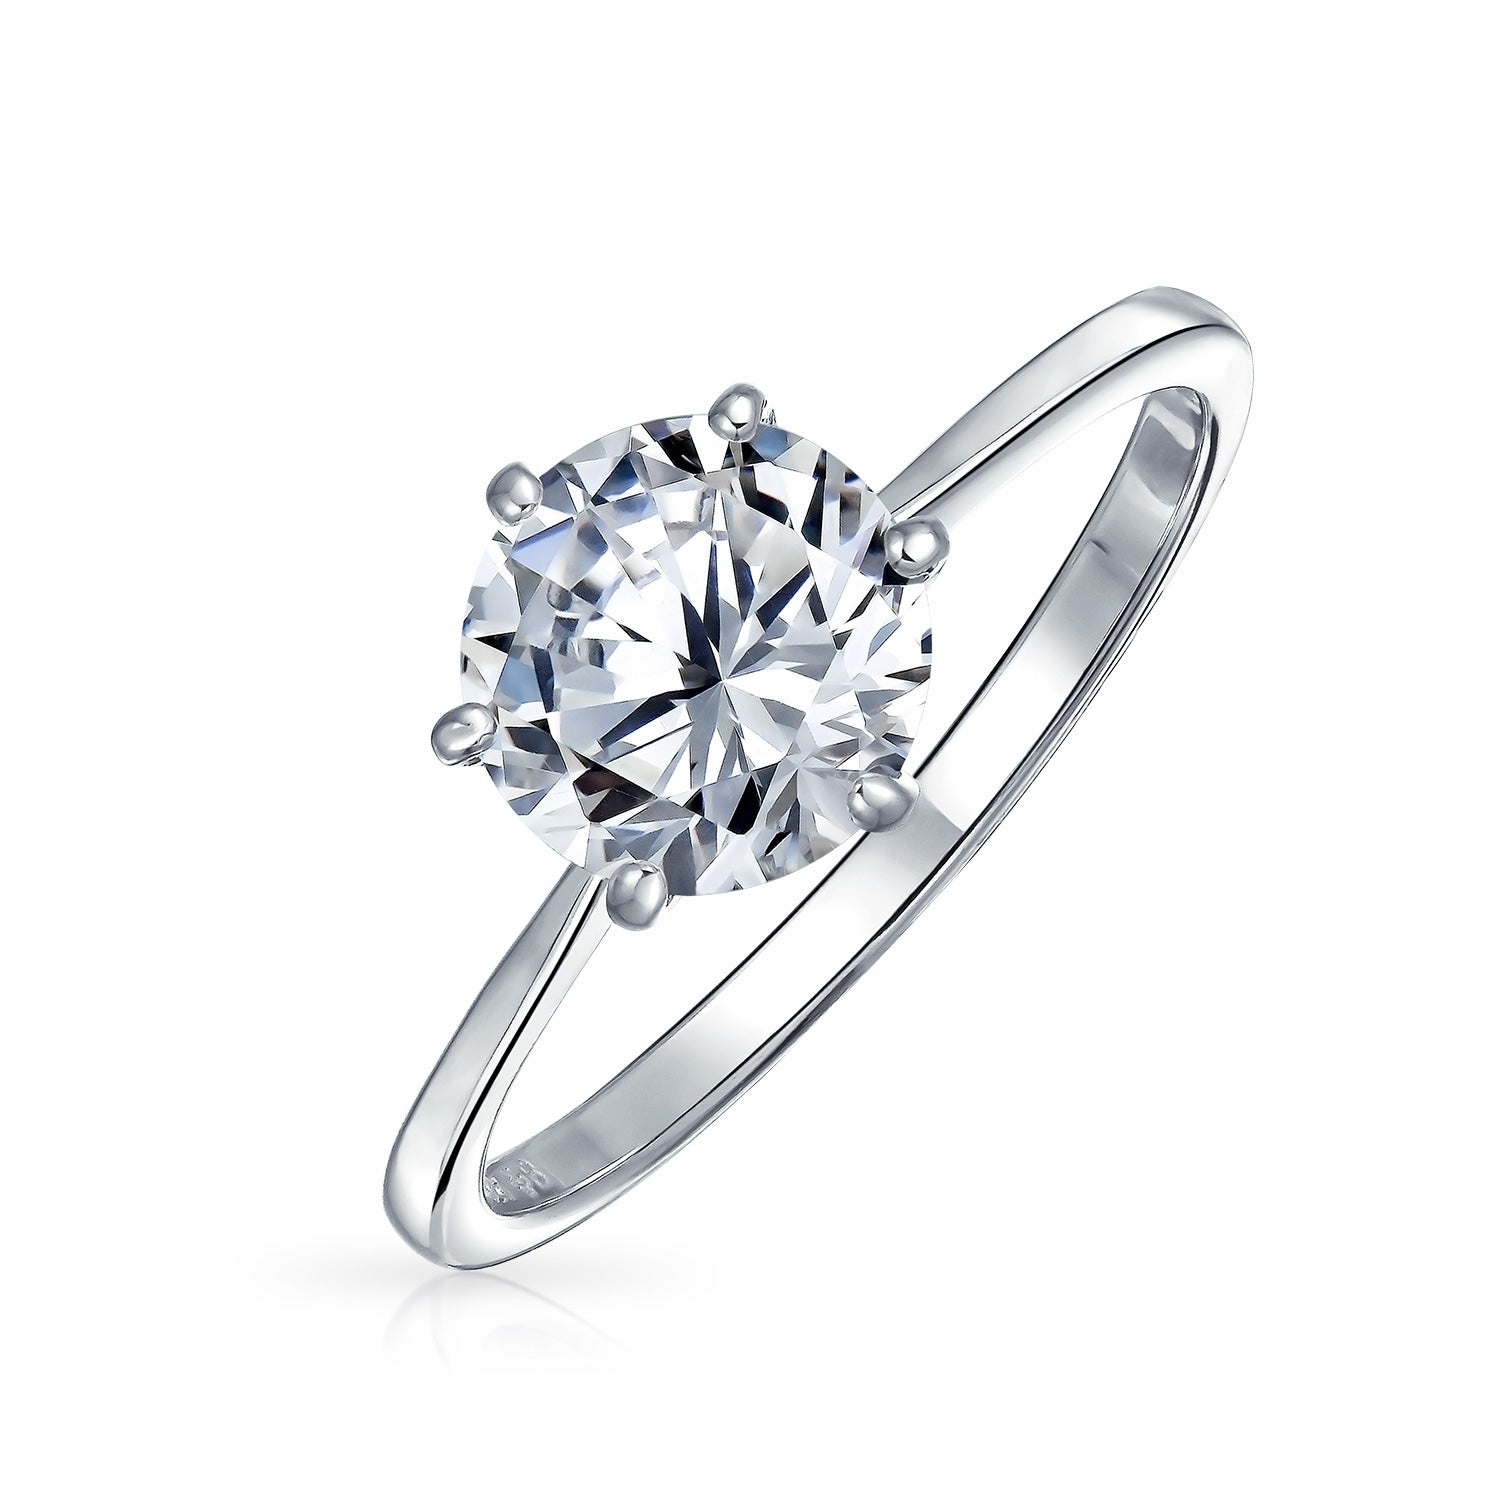 9813ec99e Shop Simple 2.5 CT 6 Prong Brilliant Cut AAA CZ Solitaire Engagement Ring  For Women 1mm Thin Band 925 Sterling Silver - On Sale - Free Shipping On  Orders ...